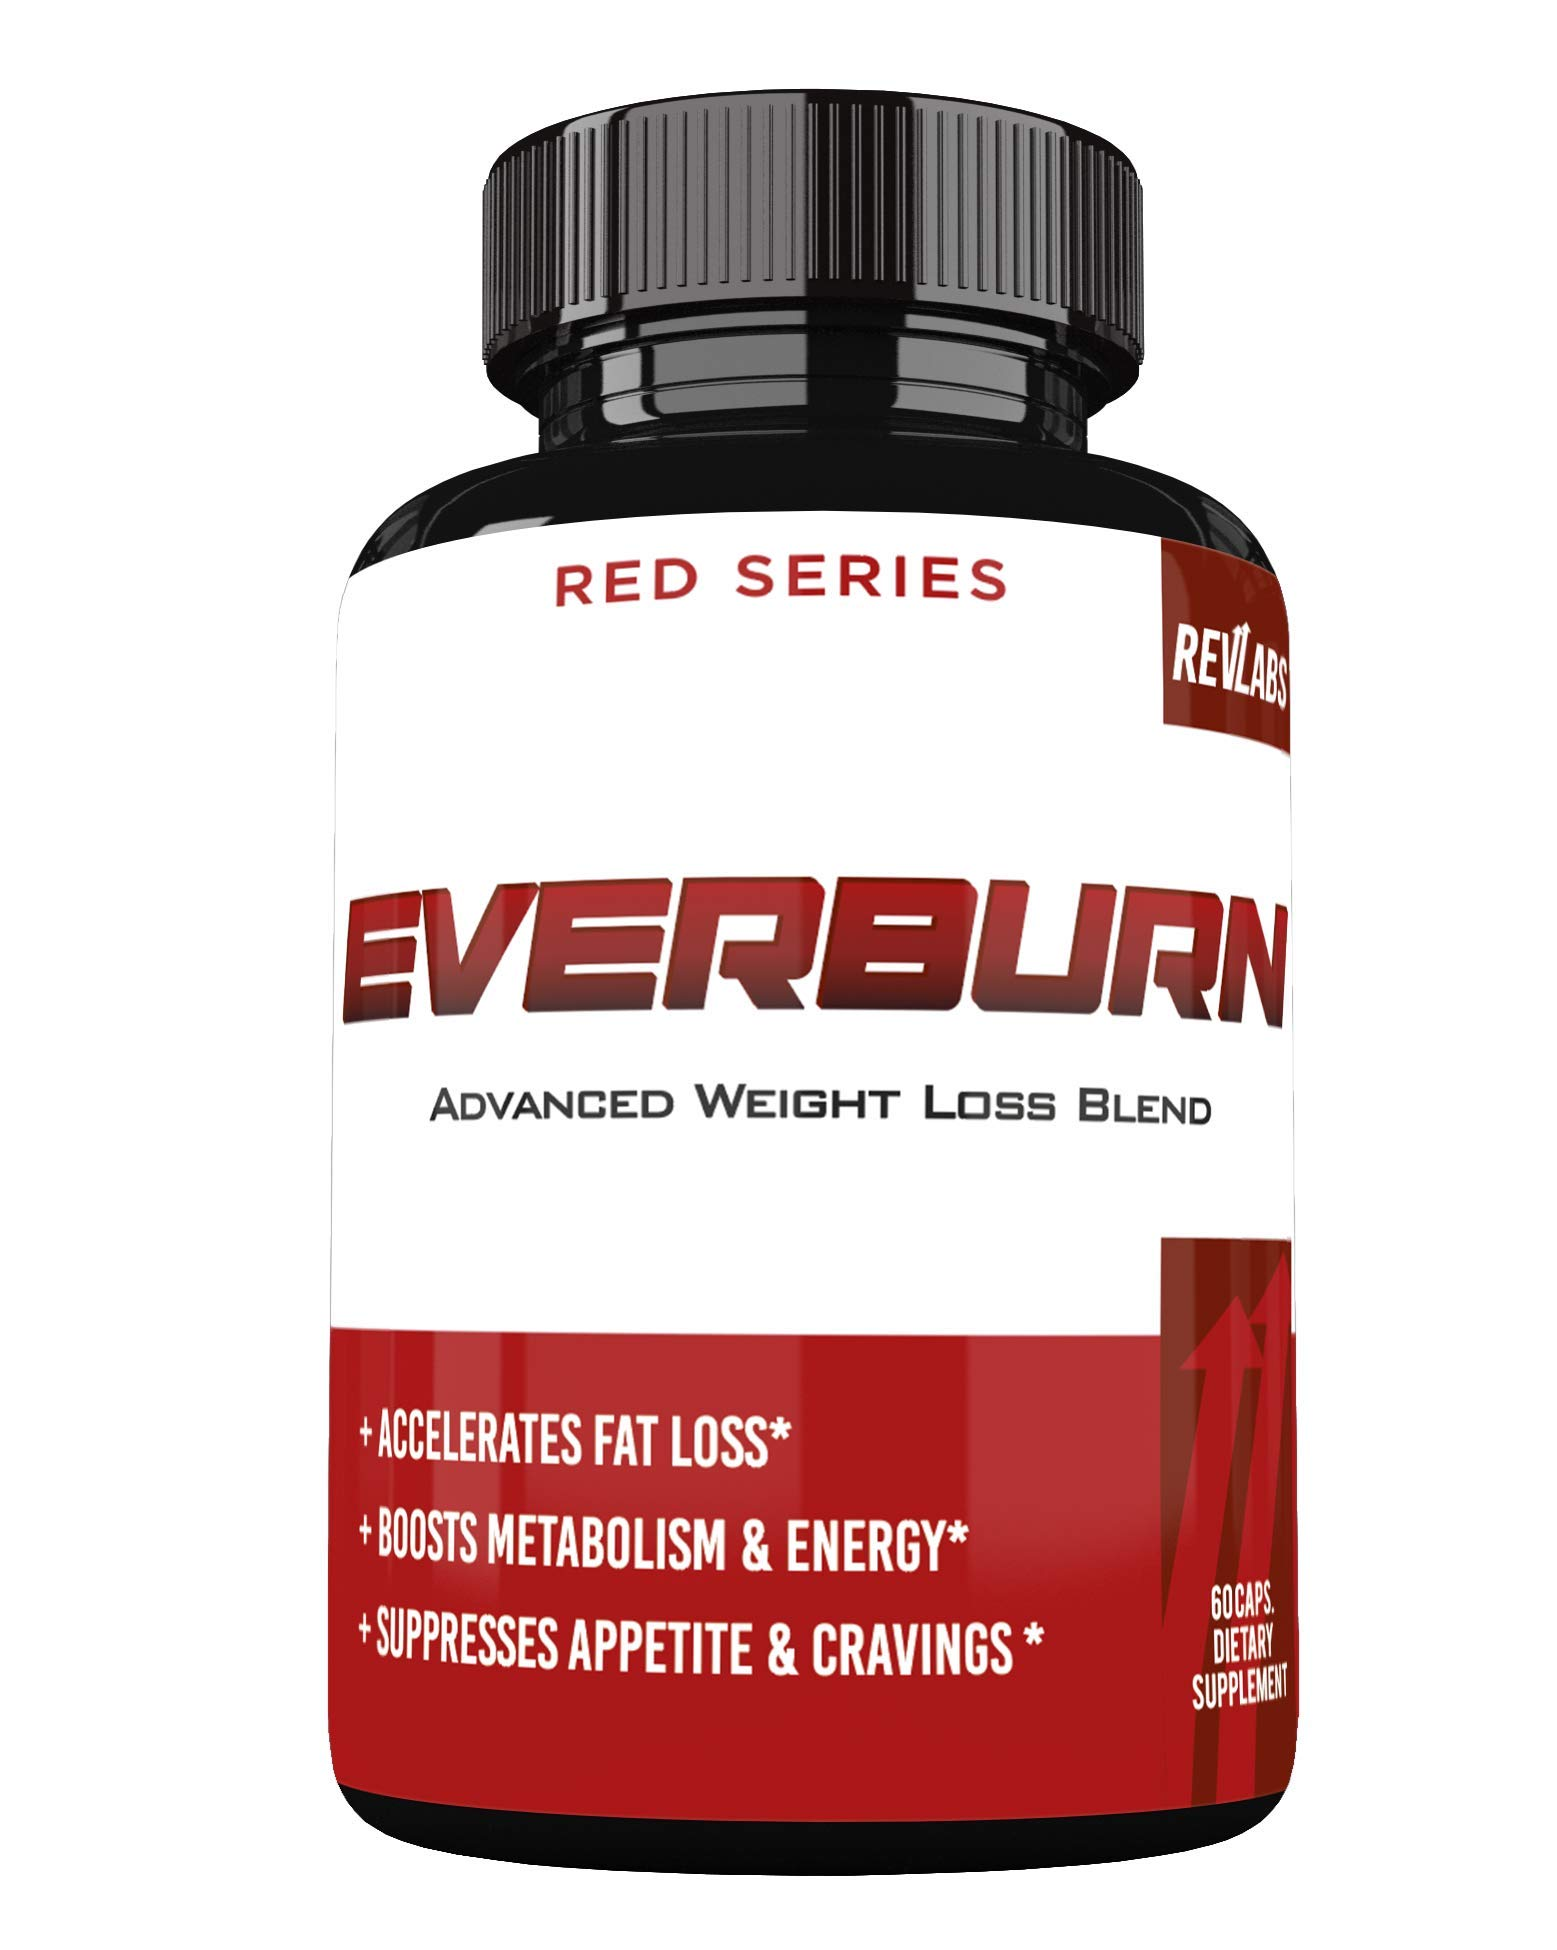 Ever Burn Advanced Weight Loss Blend - Appetite Suppression with Metabolism Support - Increased Energy & Focus - 60 Capsules